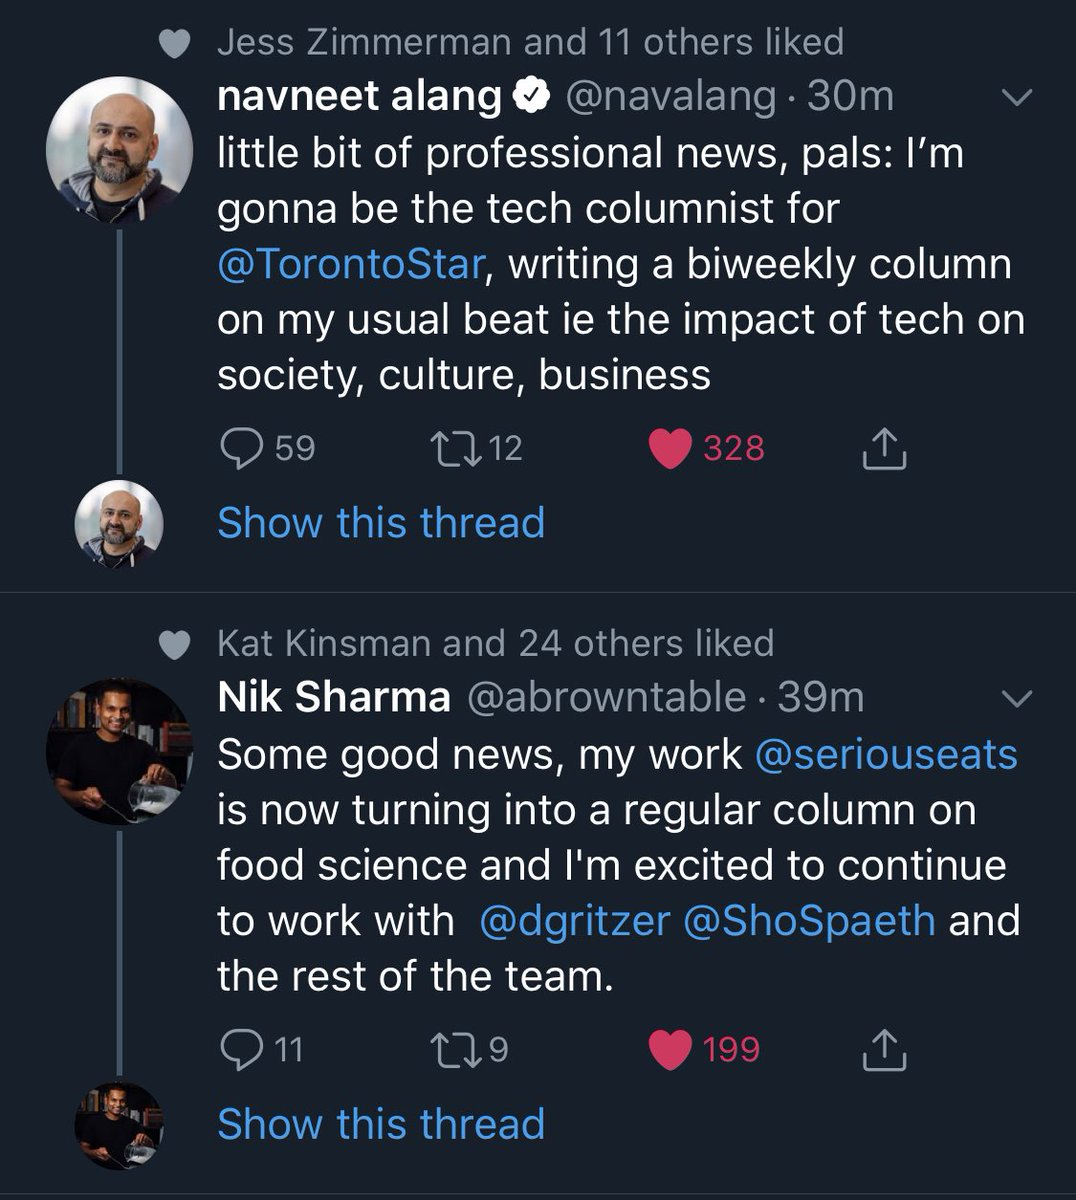 A good day for columns!!!! @navalang @abrowntable